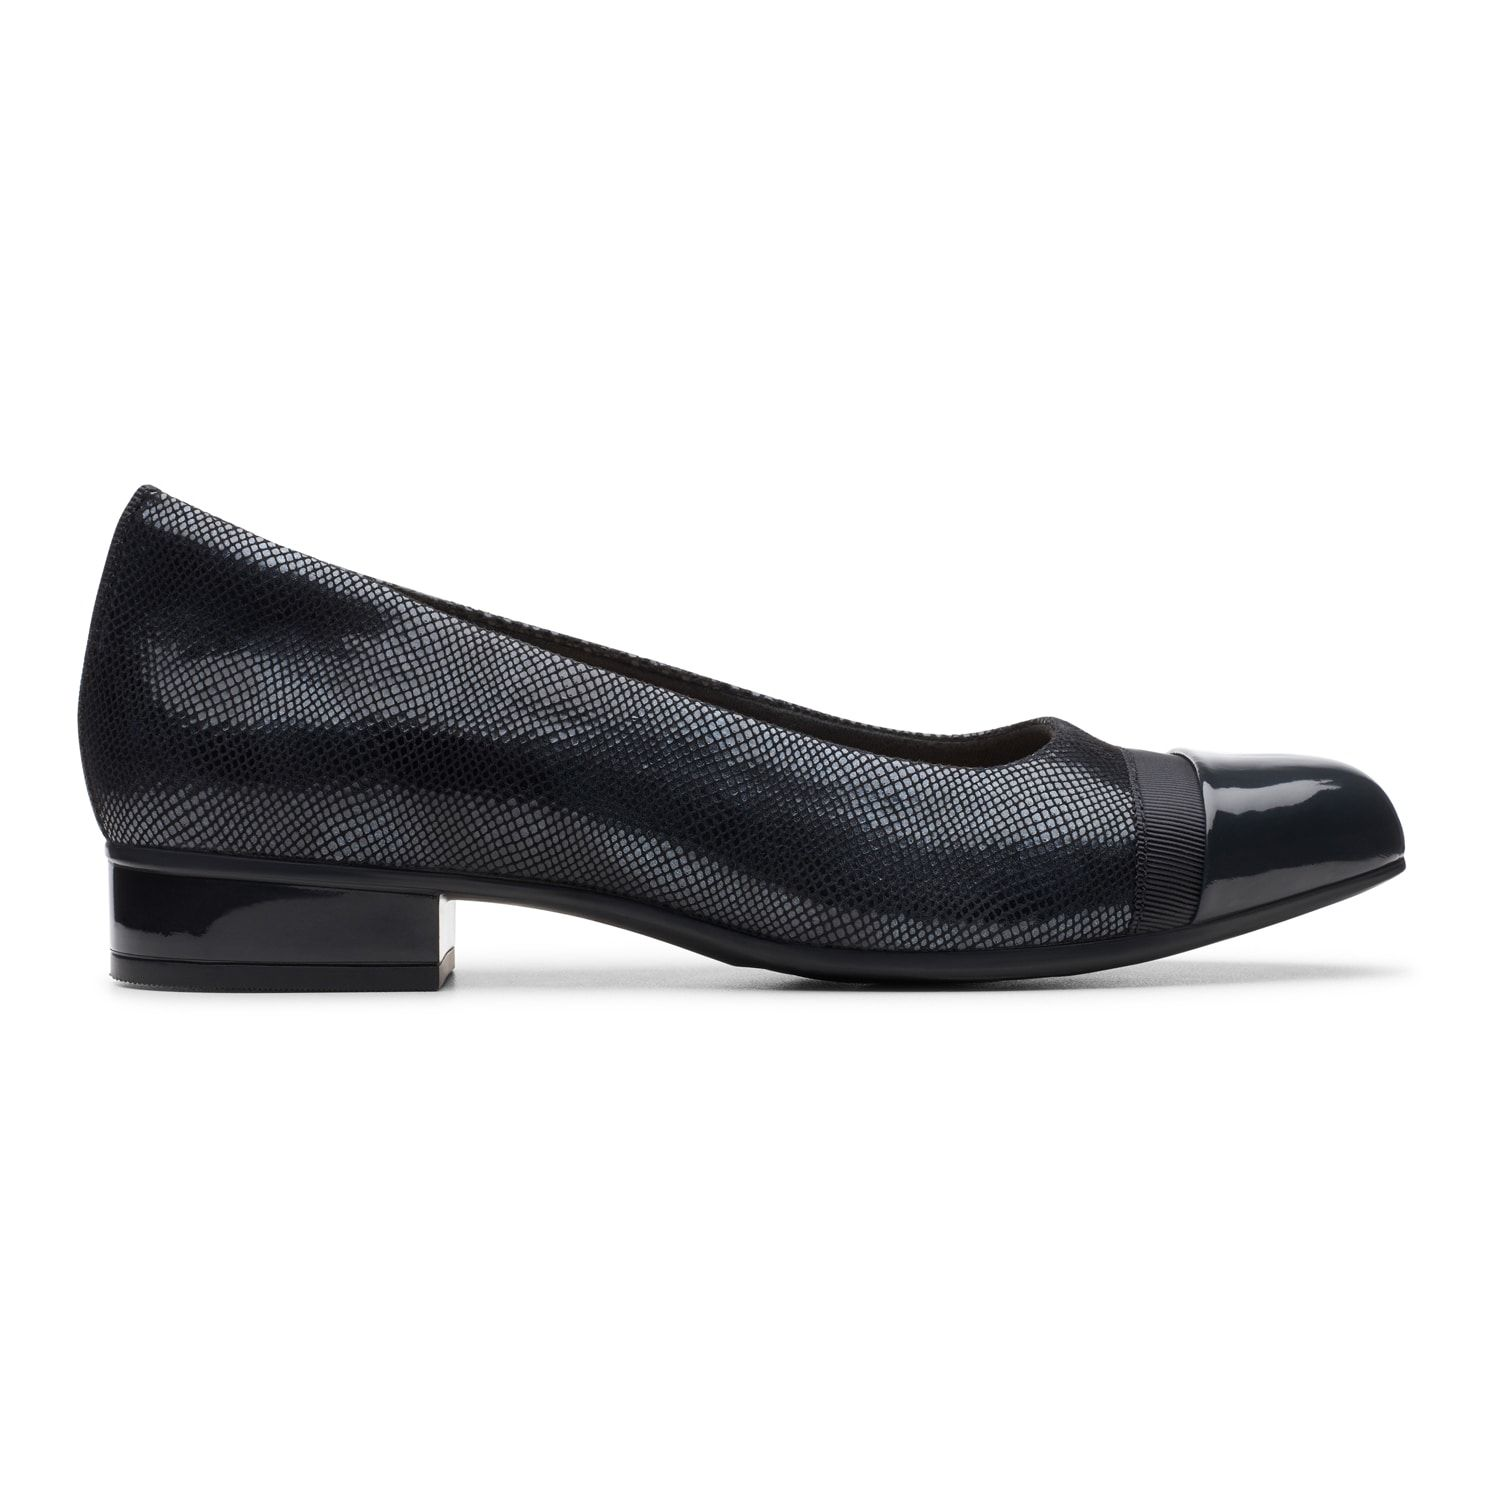 Clarks Juliet Monte Women's Pumps #Affiliate #Juliet, #Ad, #Clarks, #Monte, #Pumps